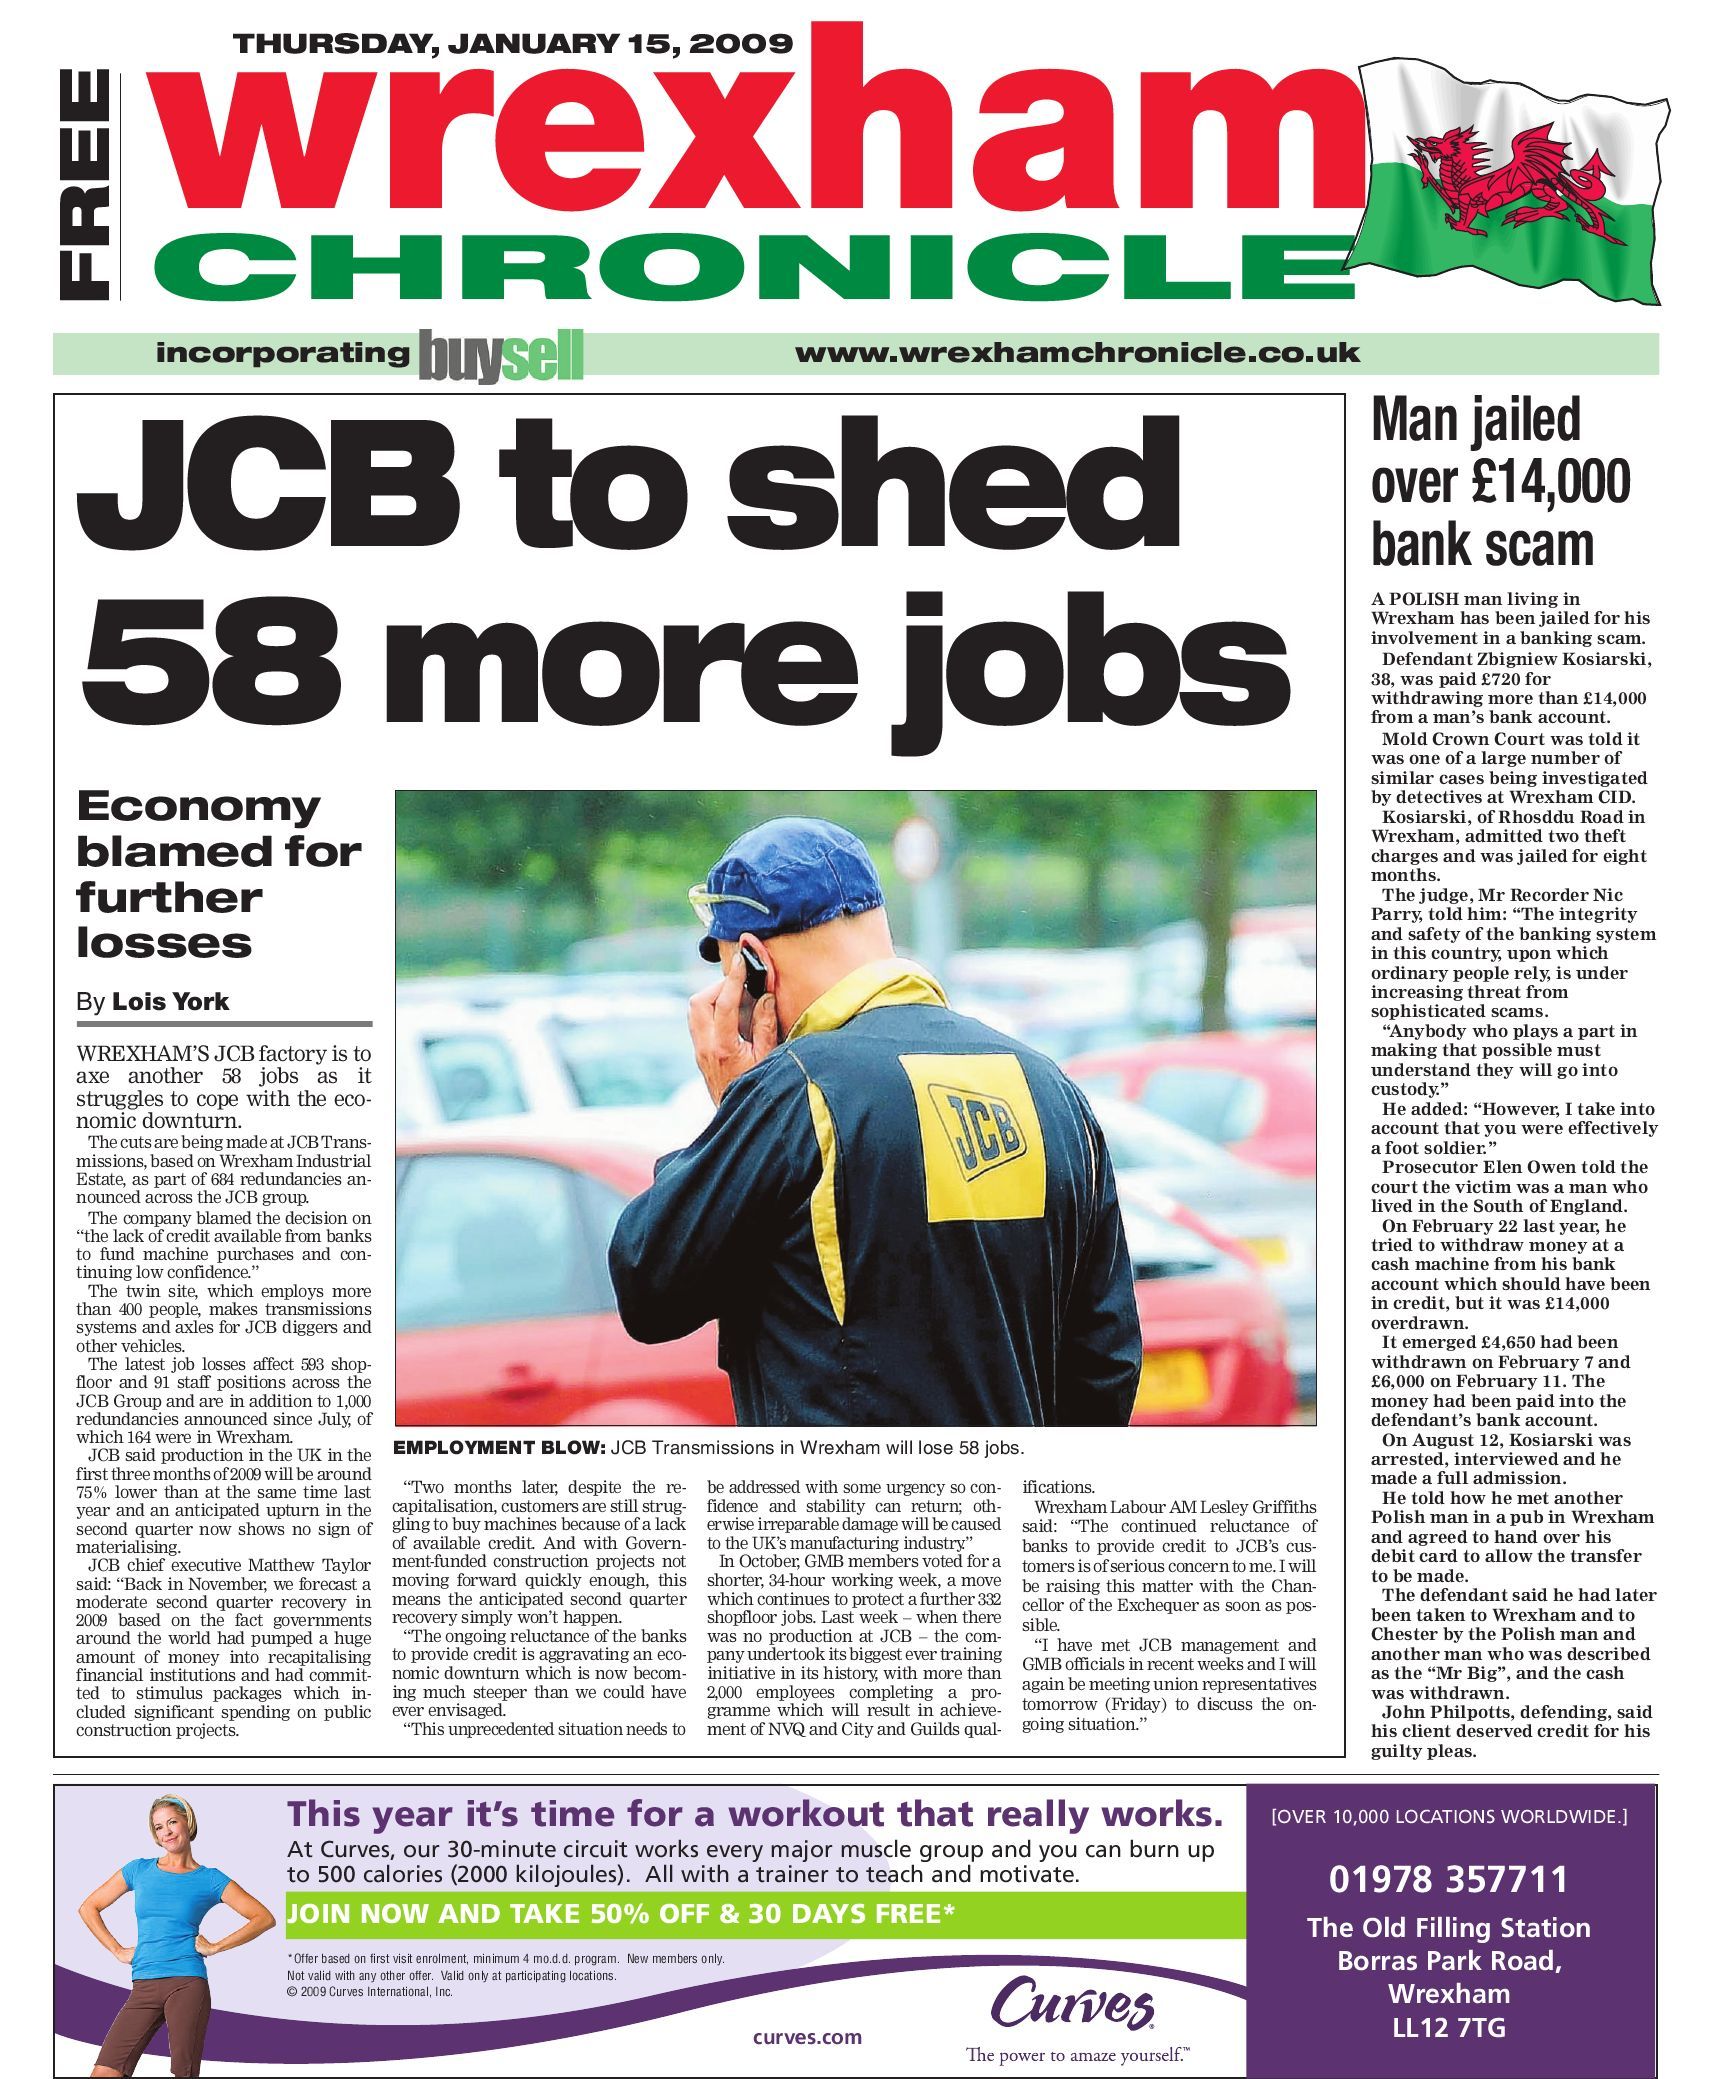 Wrexham Chronicle 15 1 09 by James Shepherd issuu